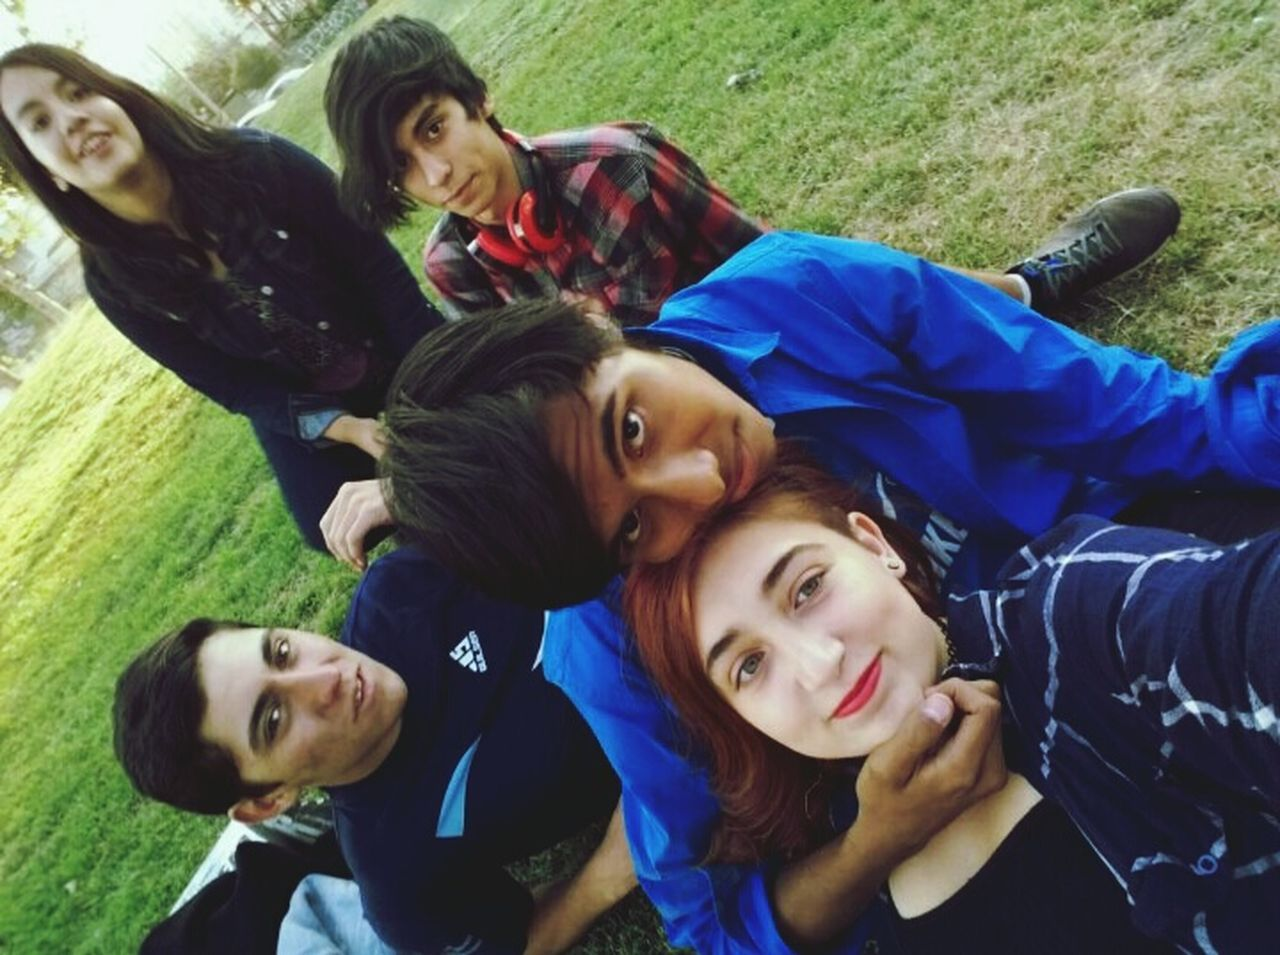 looking at camera, togetherness, portrait, young adult, leisure activity, young women, real people, casual clothing, smiling, day, outdoors, lying down, lifestyles, happiness, friendship, group of people, grass, beautiful woman, nature, tree, close-up, animal themes, people